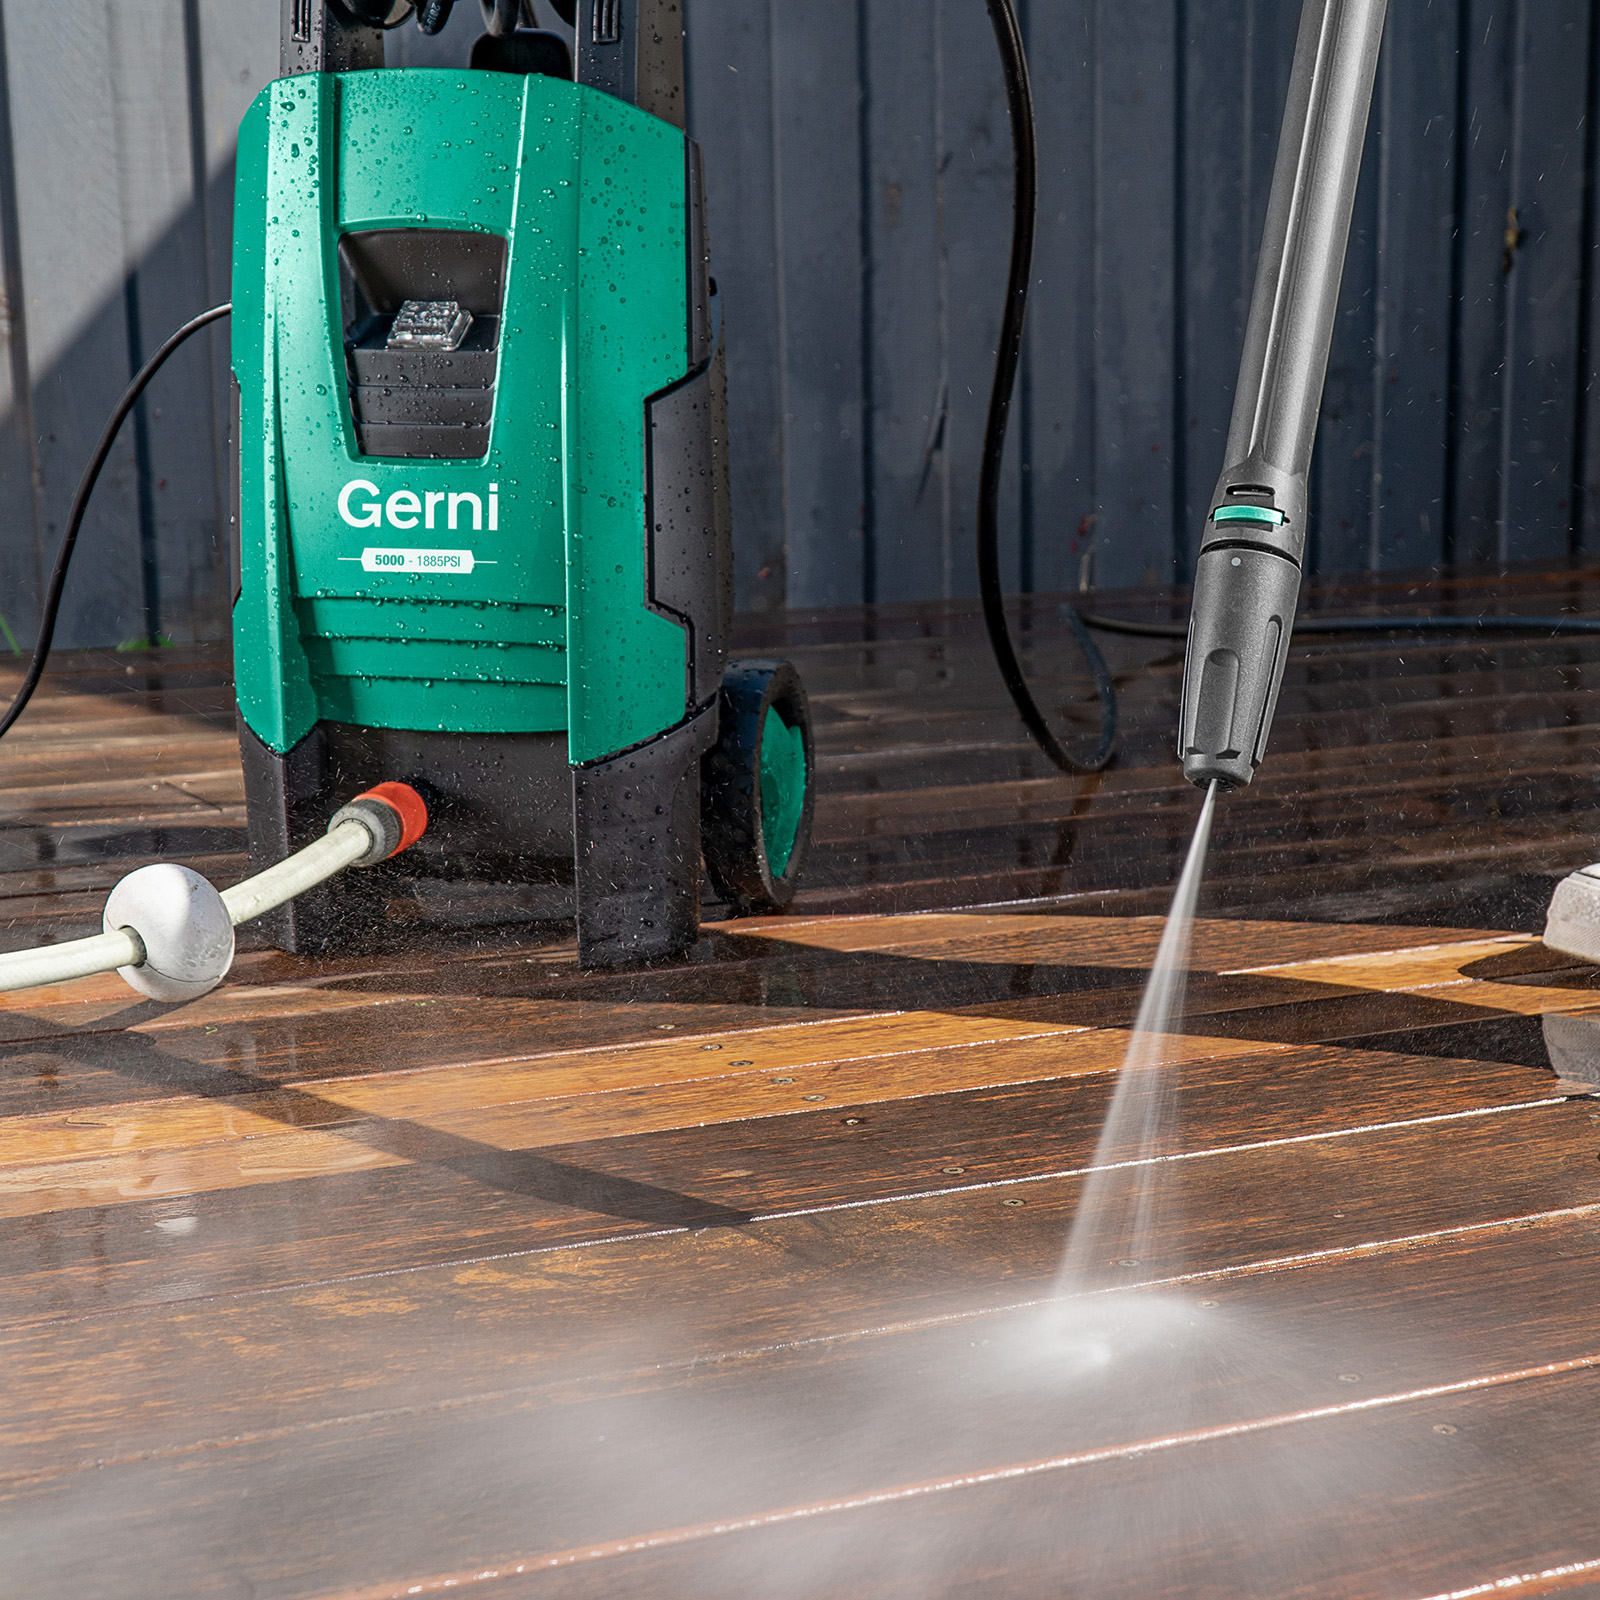 Gerni 5000 - Jet Spray Nozzle - Shed Deck Patio